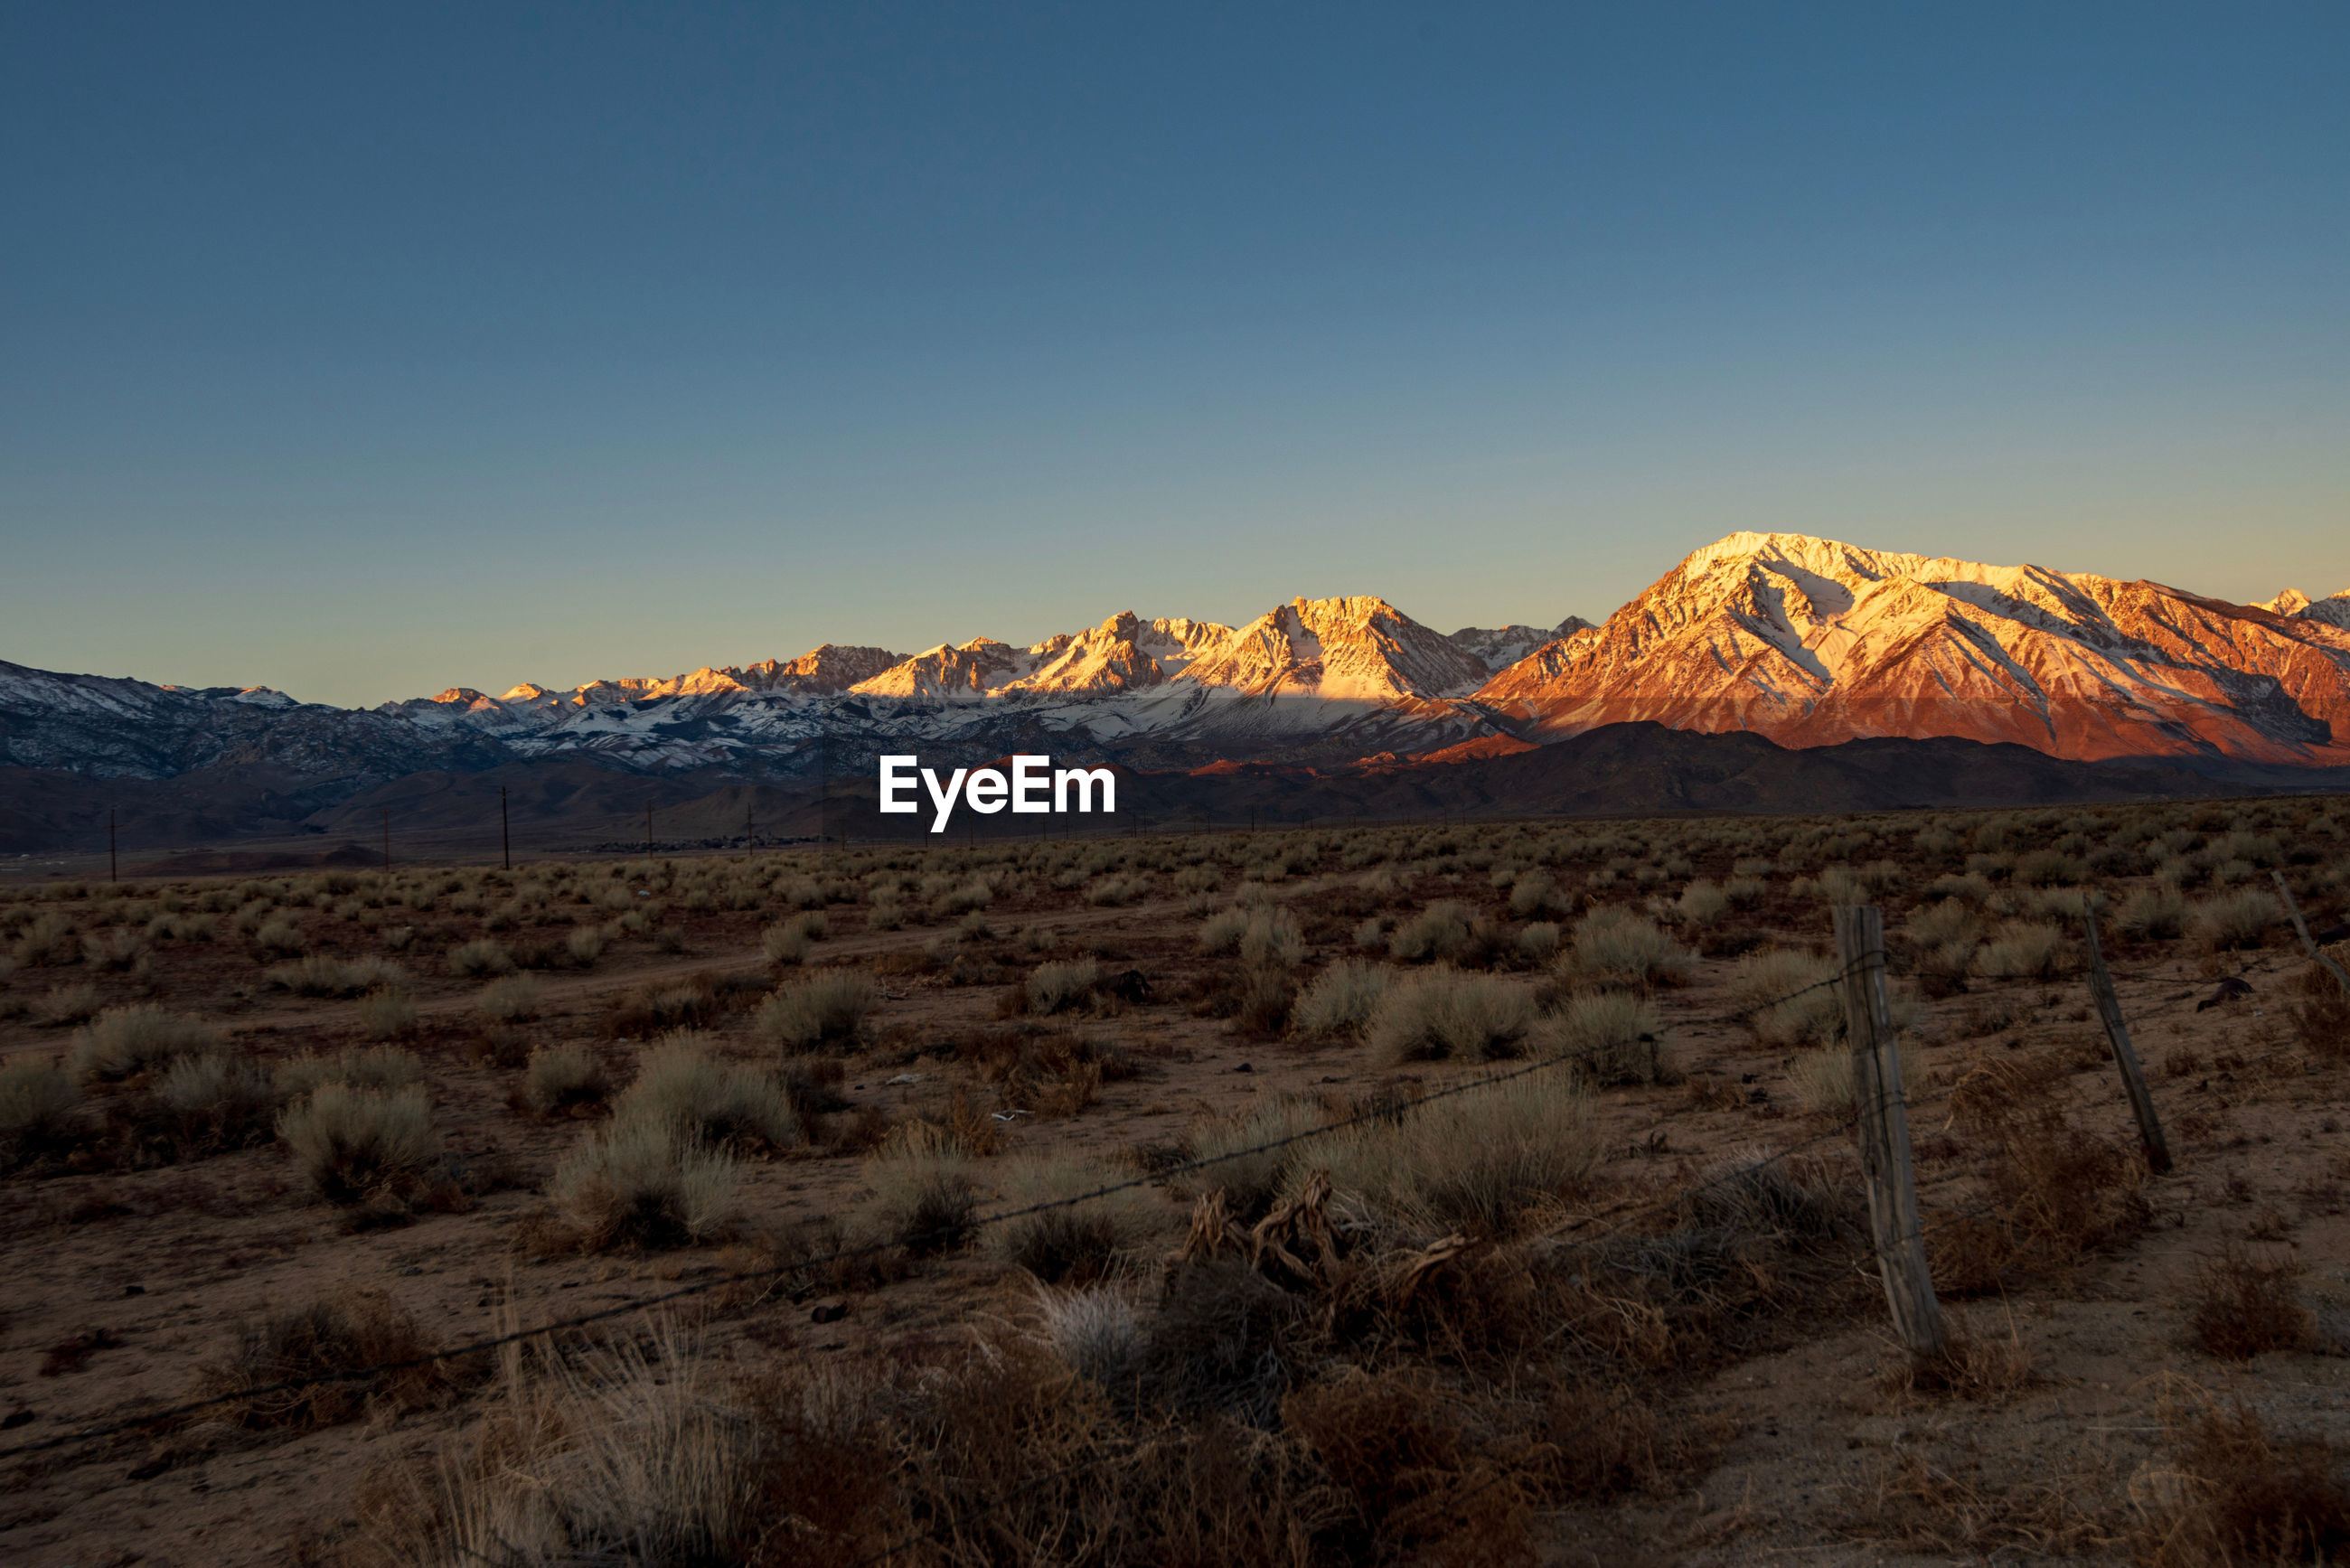 Scenic view of arid landscape at sunrise with snowy mountains against clear sky